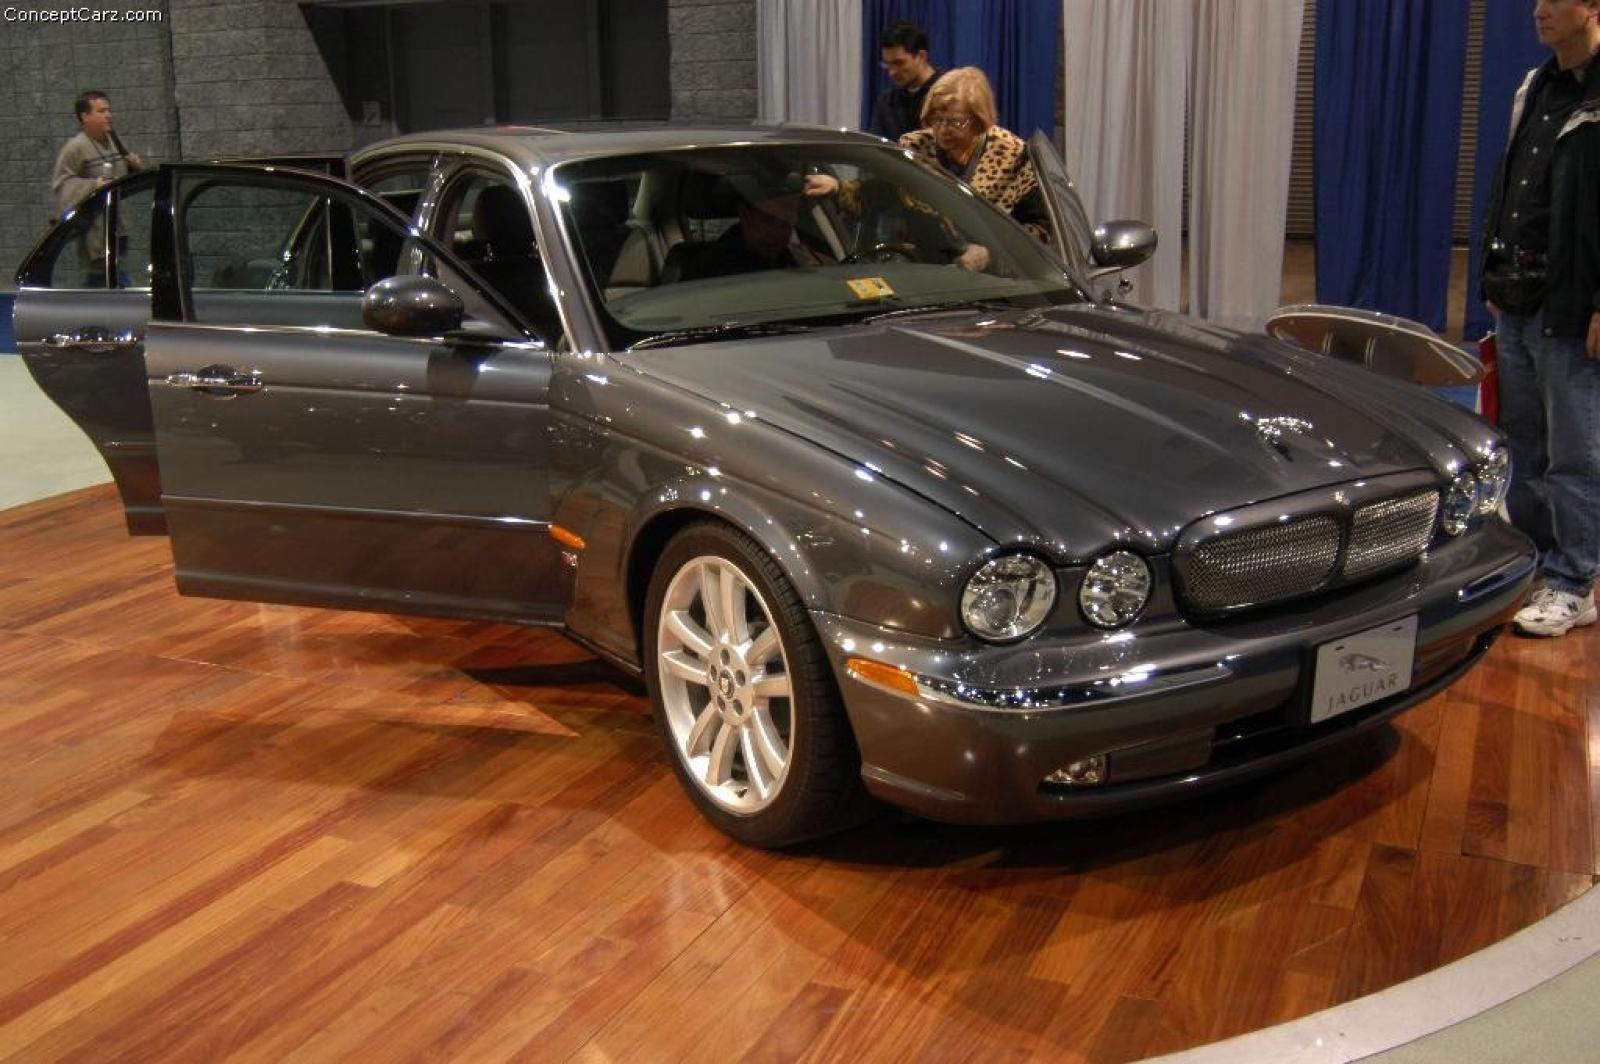 2004 Jaguar XJ Series #1 800 1024 1280 1600 Origin